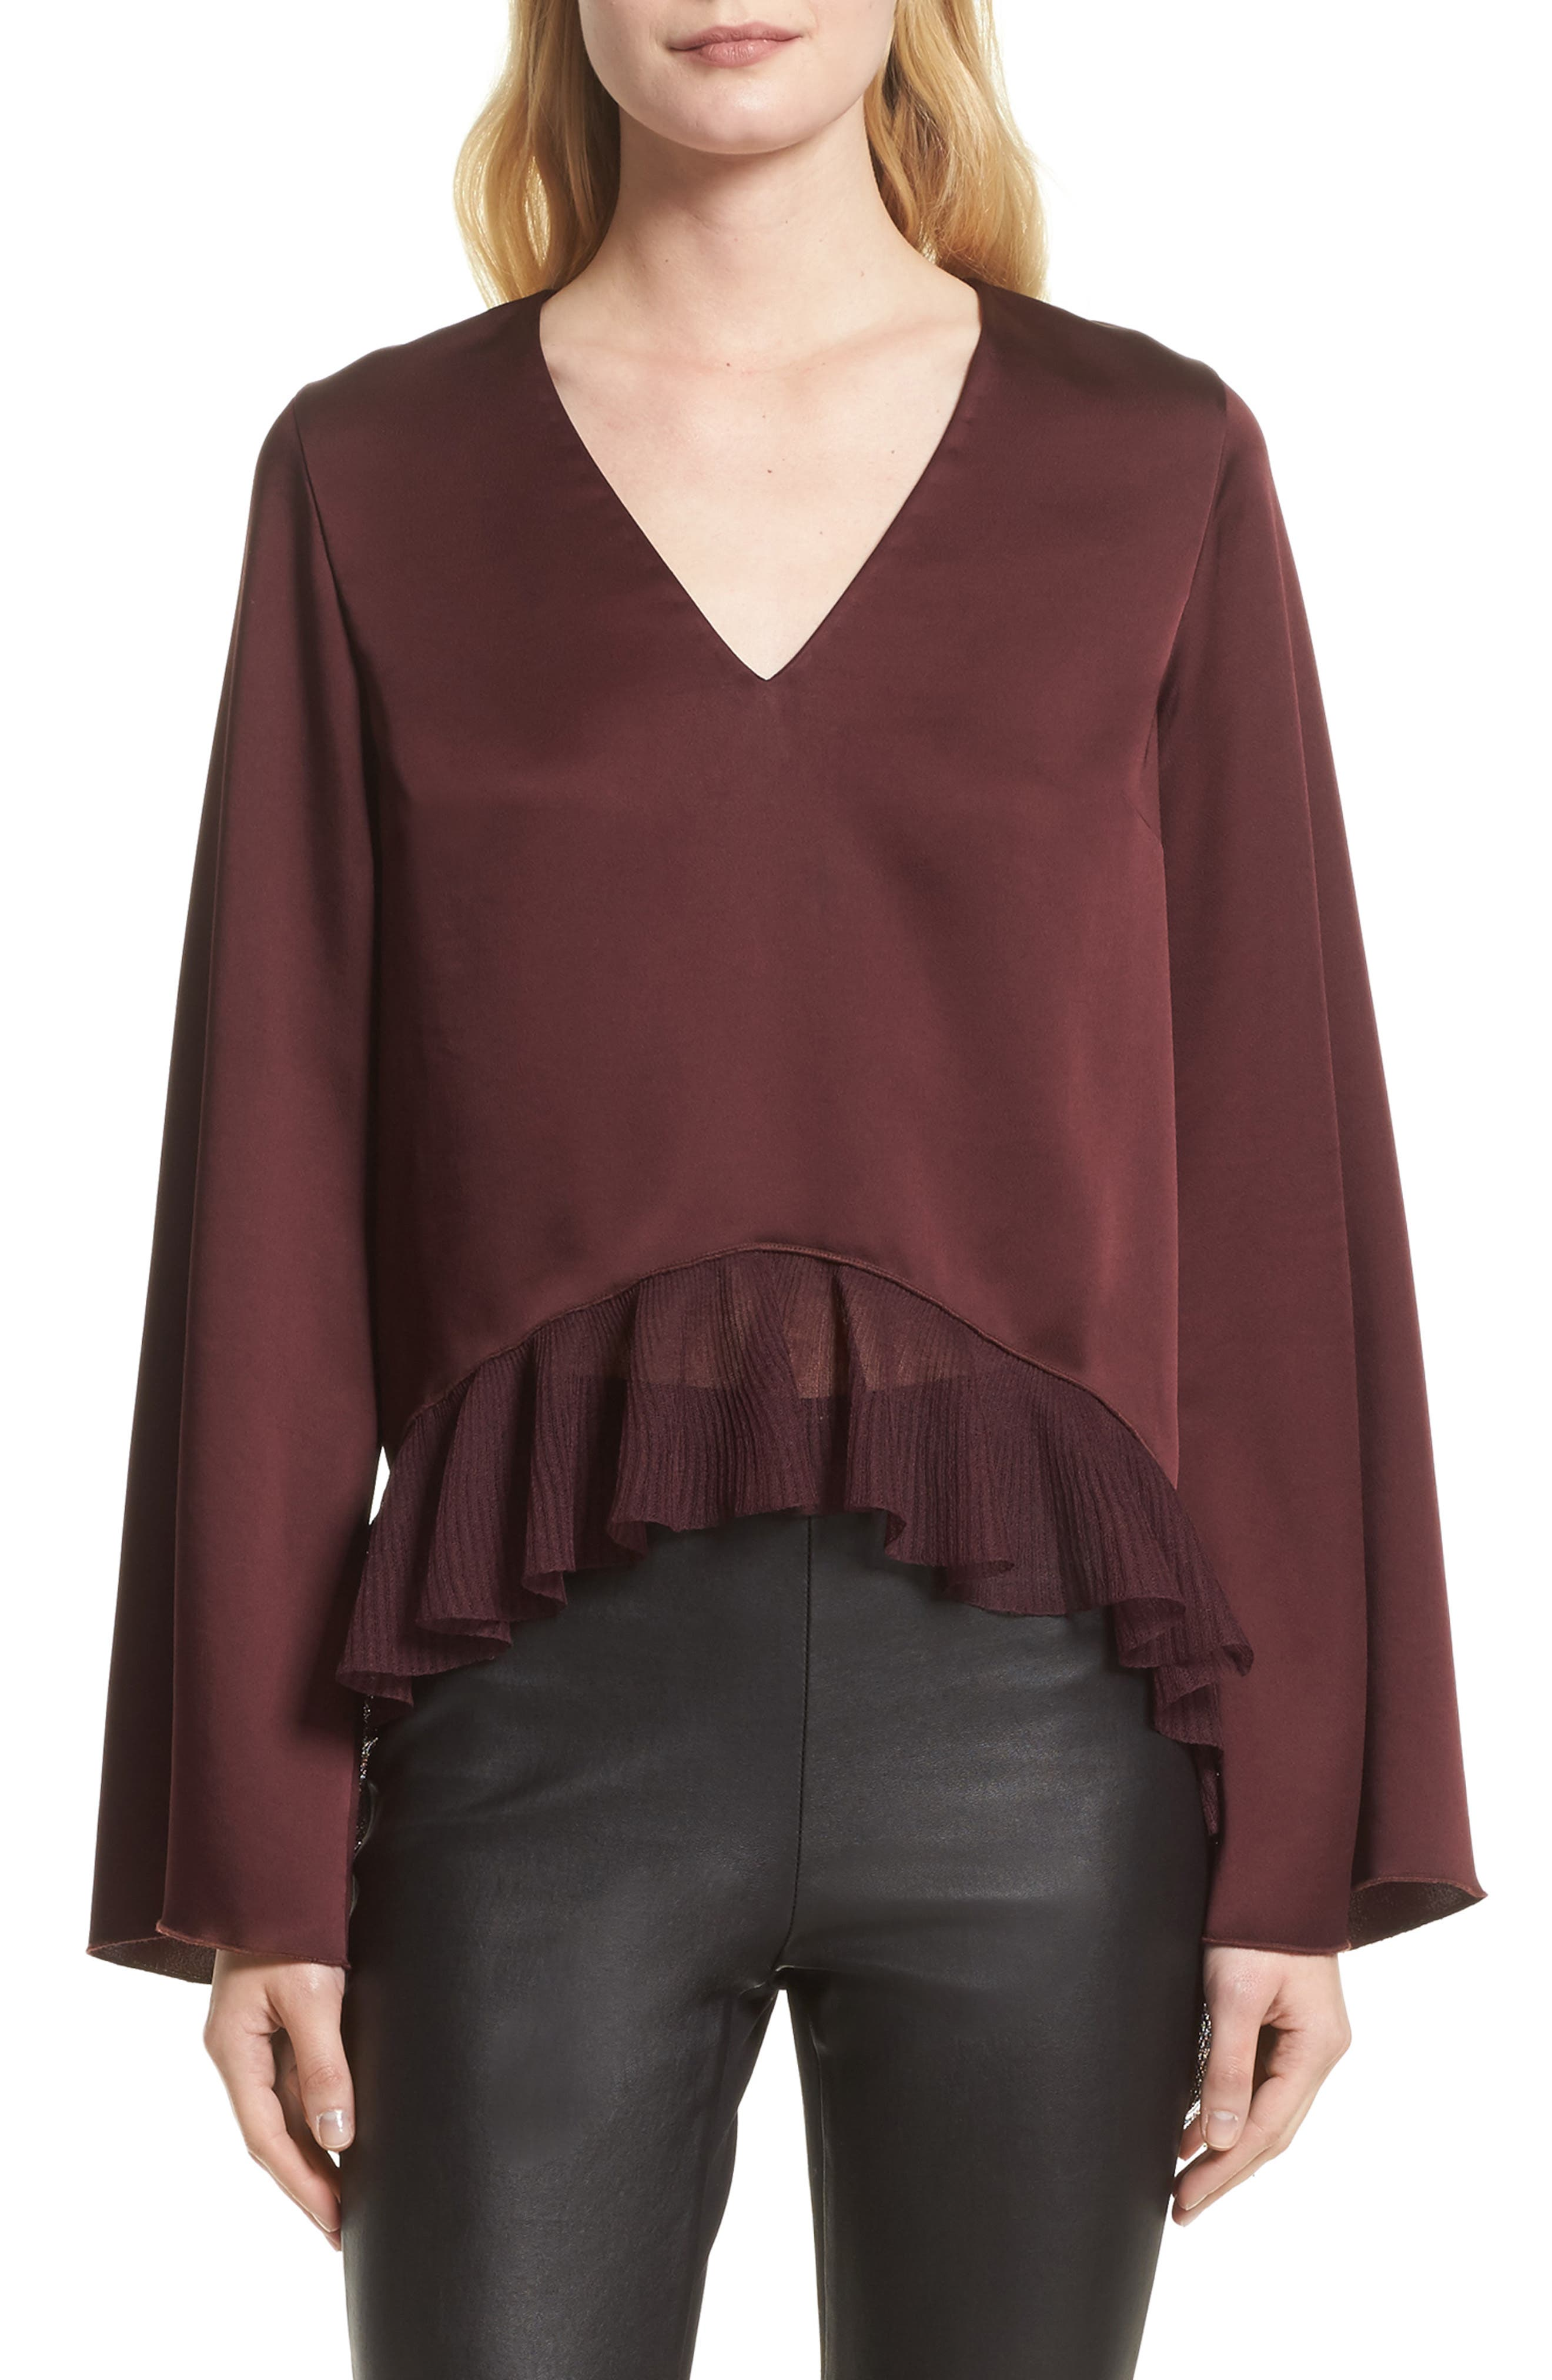 Main Image - Elizabeth and James Heath Ruffle Hem Top (Nordstrom Exclusive)